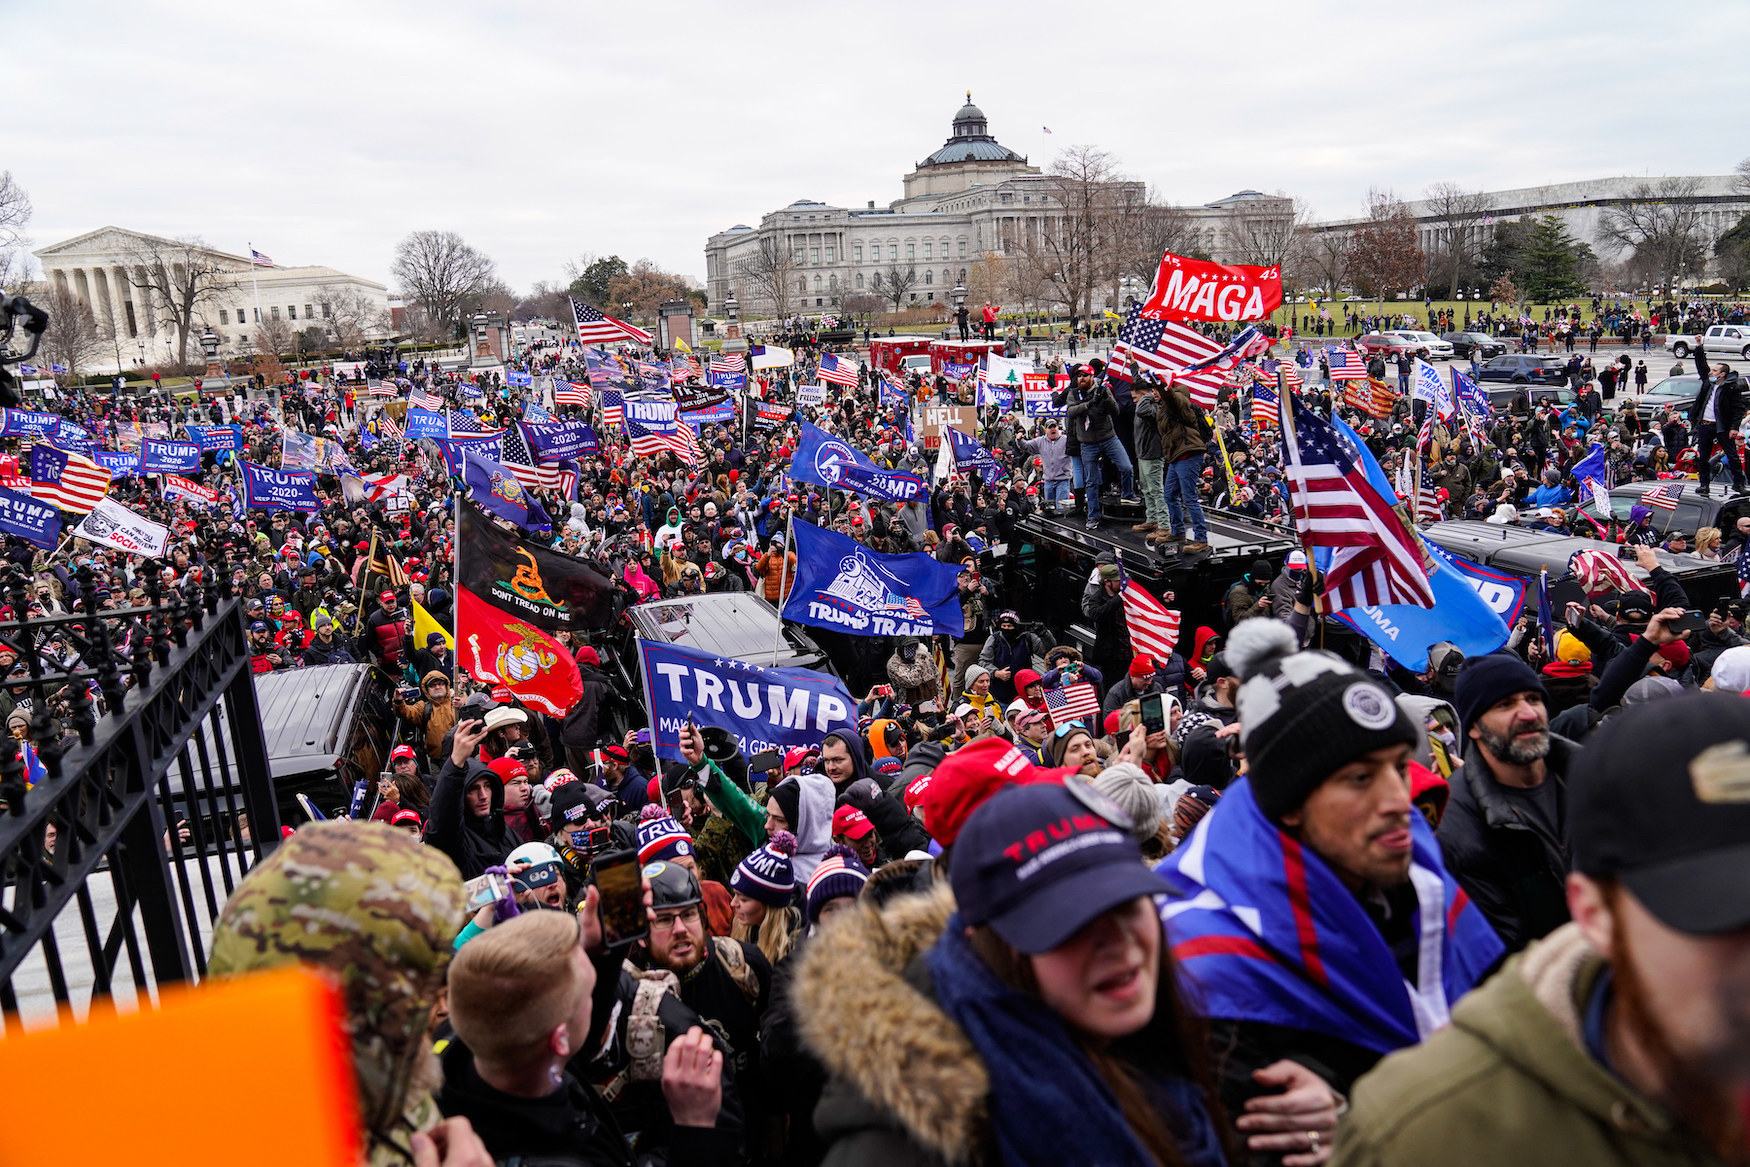 Crowds gather outside the U.S. Capitol carrying Trump and MAGA flags